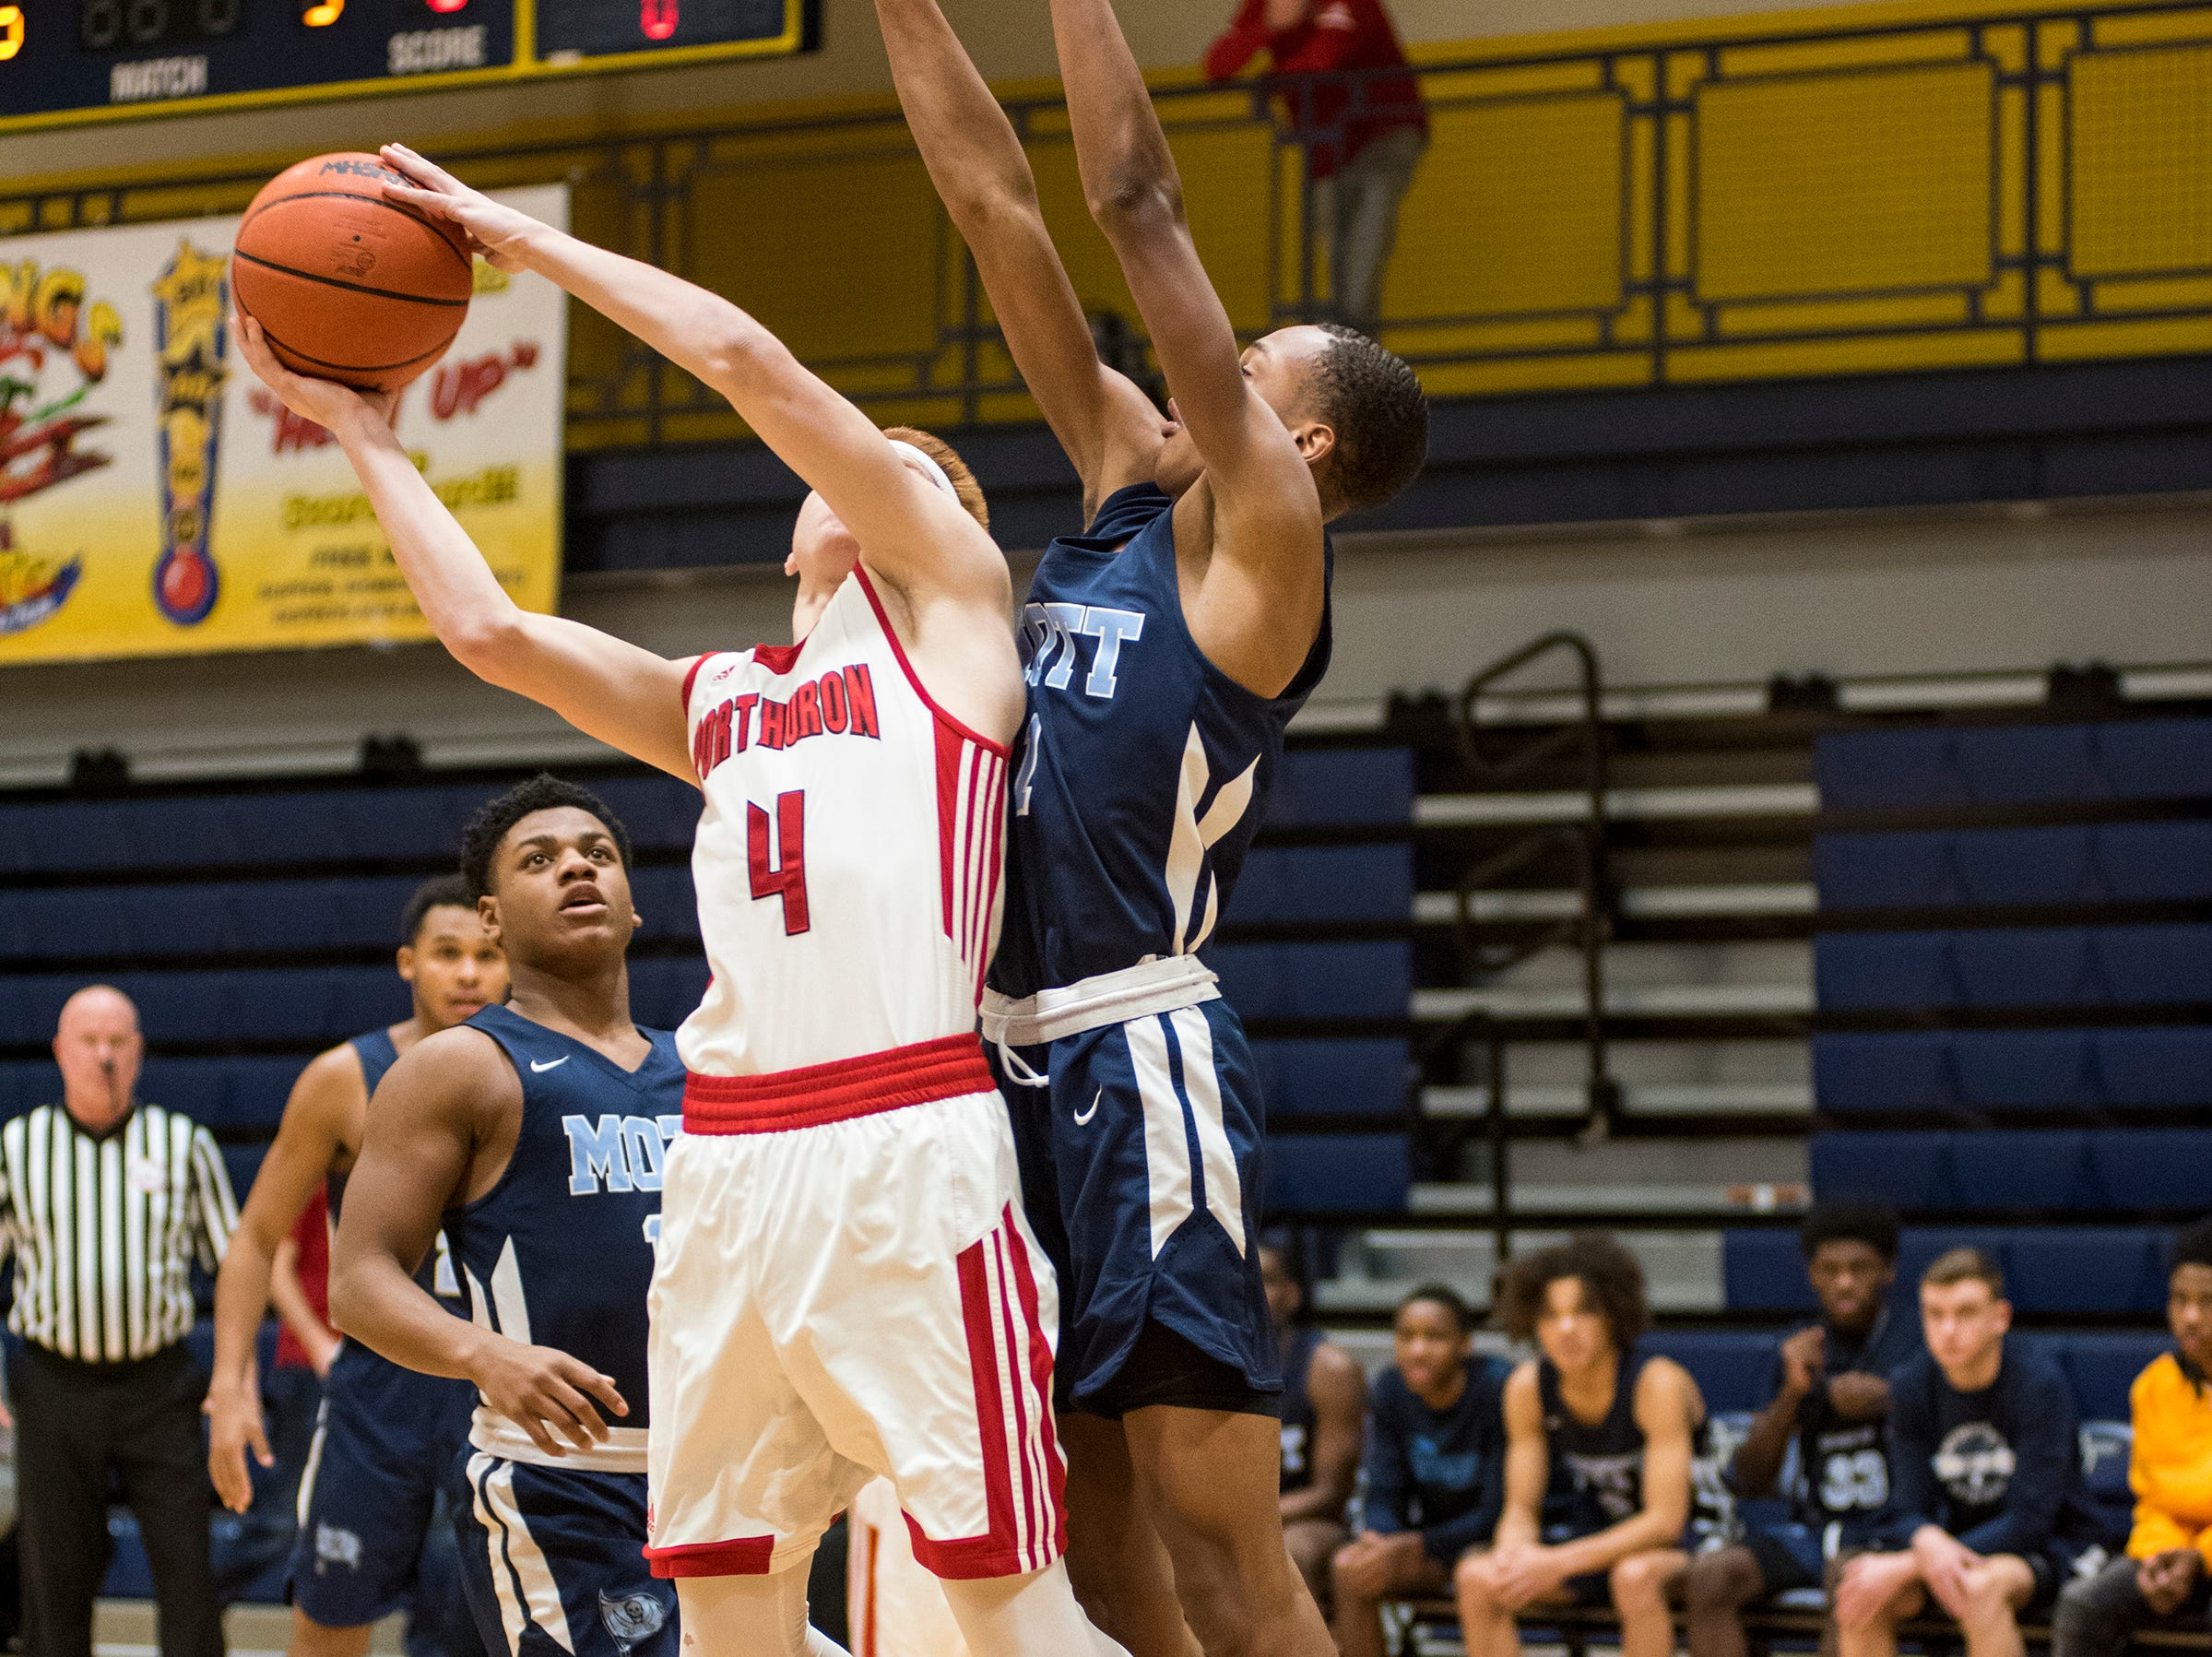 Waterford Mott HIgh School guard Damarion Bonds (right) reaches to block a shot by Port Huron High School guard Ryan Gilbert during their SC4 Holiday Basketball Showcase game Saturday, Dec. 29, 2018 at the SC4 Fieldhouse.